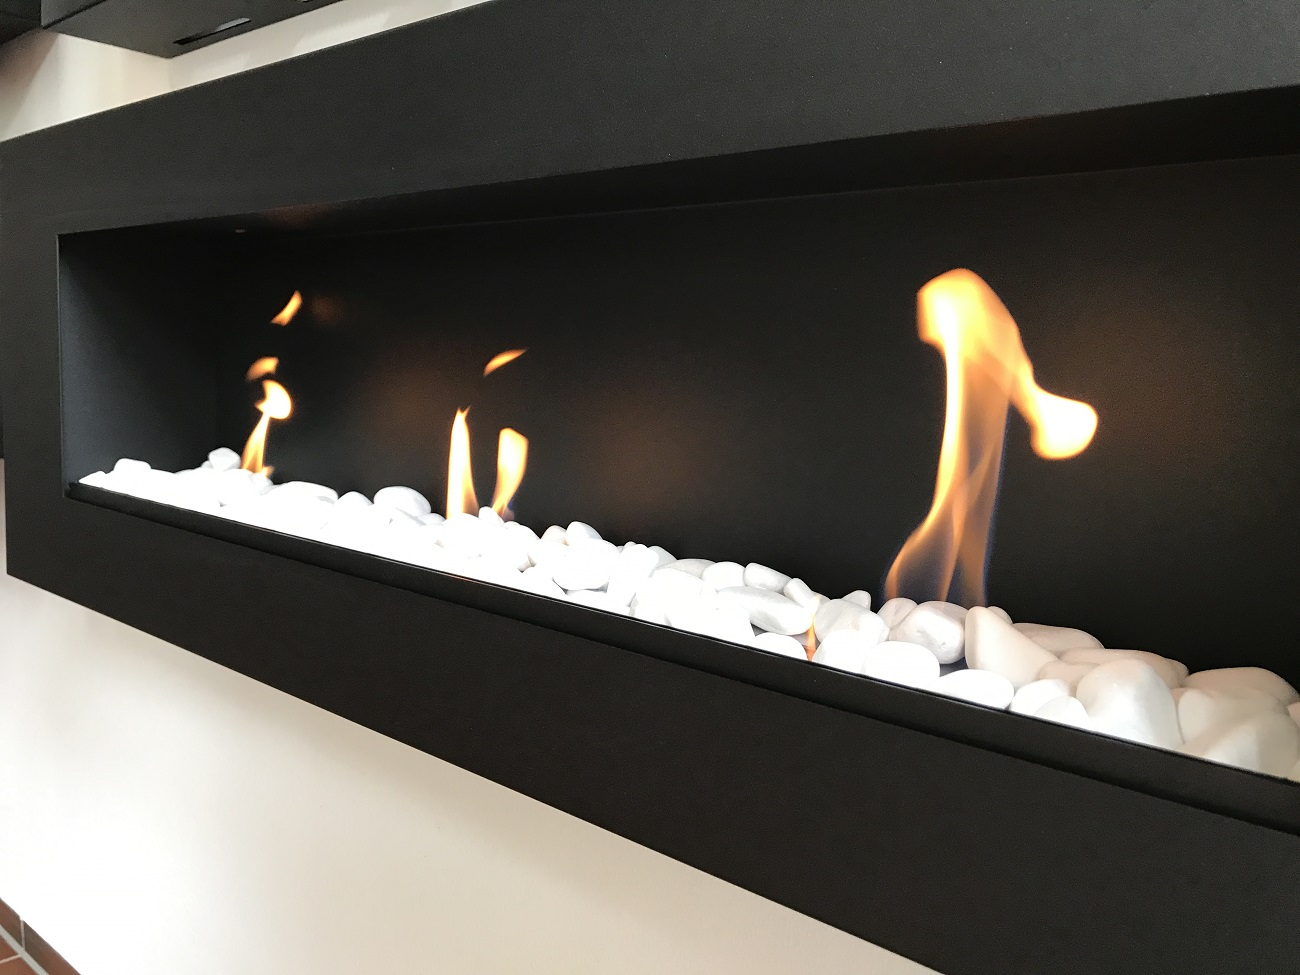 bio ethanol kamin wandkamin kamin gelkamin mit glasscheibe 3 brenner 120x40cm ebay. Black Bedroom Furniture Sets. Home Design Ideas